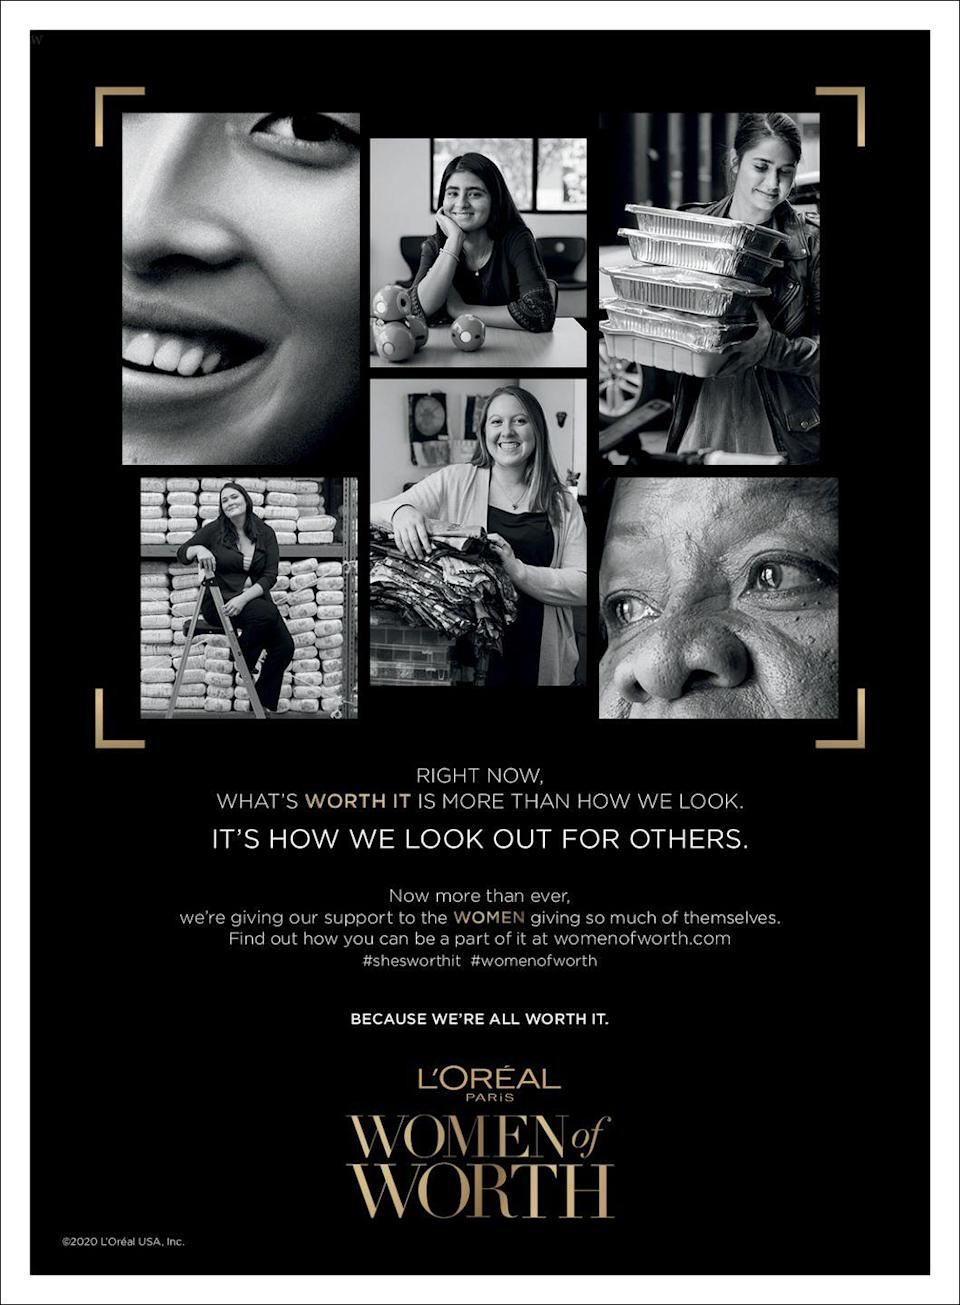 """<p>Right now, what's worth it is more than how we look. It's how we look out for others. Now more than ever, we're giving our support to the women giving so much of themselves. </p><p>Find our how you can be a part of it at <a href=""""https://www.lorealparisusa.com/women-of-worth.aspx"""" rel=""""nofollow noopener"""" target=""""_blank"""" data-ylk=""""slk:womenofworth.com."""" class=""""link rapid-noclick-resp"""">womenofworth.com.</a> #shesworth it #womenofworth</p><p>Because we're all worth it. </p>"""